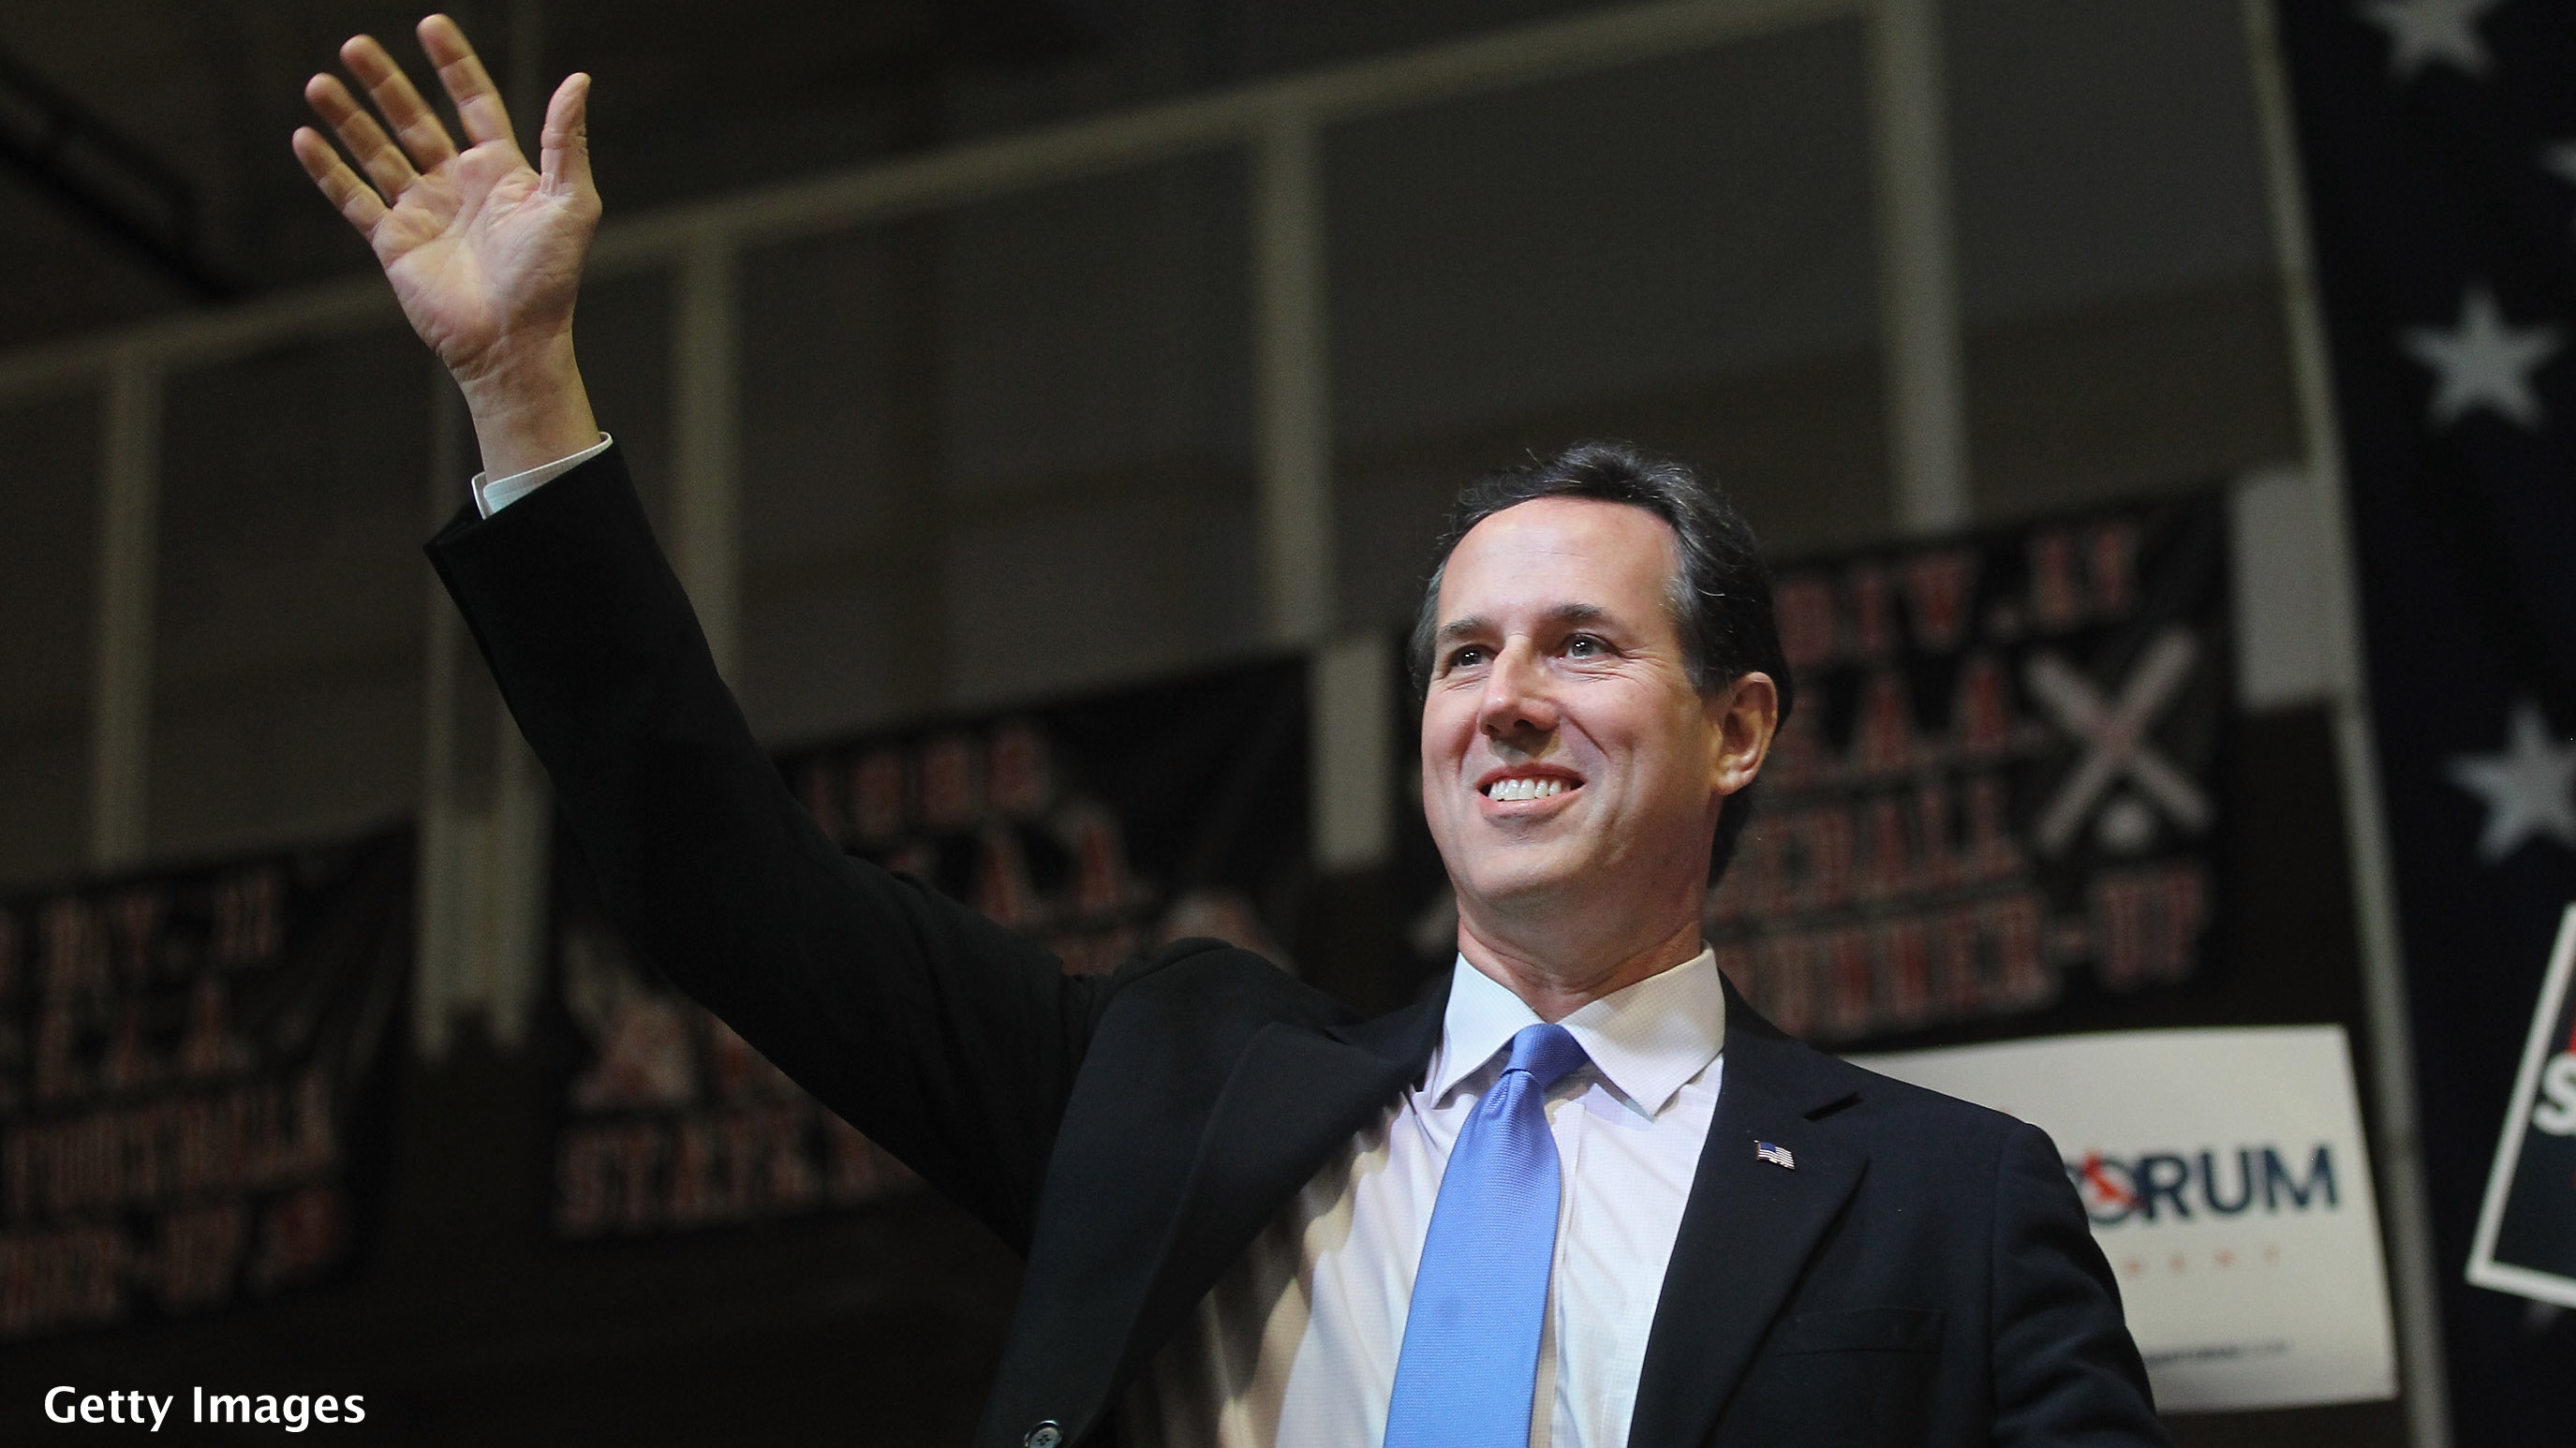 BREAKING: Santorum wins Kansas caucuses, CNN projects